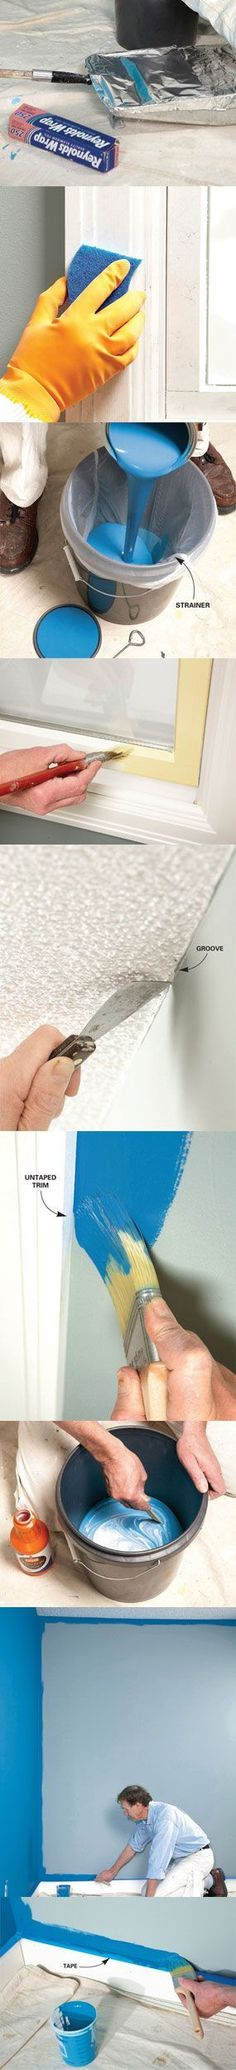 A veteran painting contractor shares his secrets for painting walls fast, yet producing first-rate results. home improvement hacks